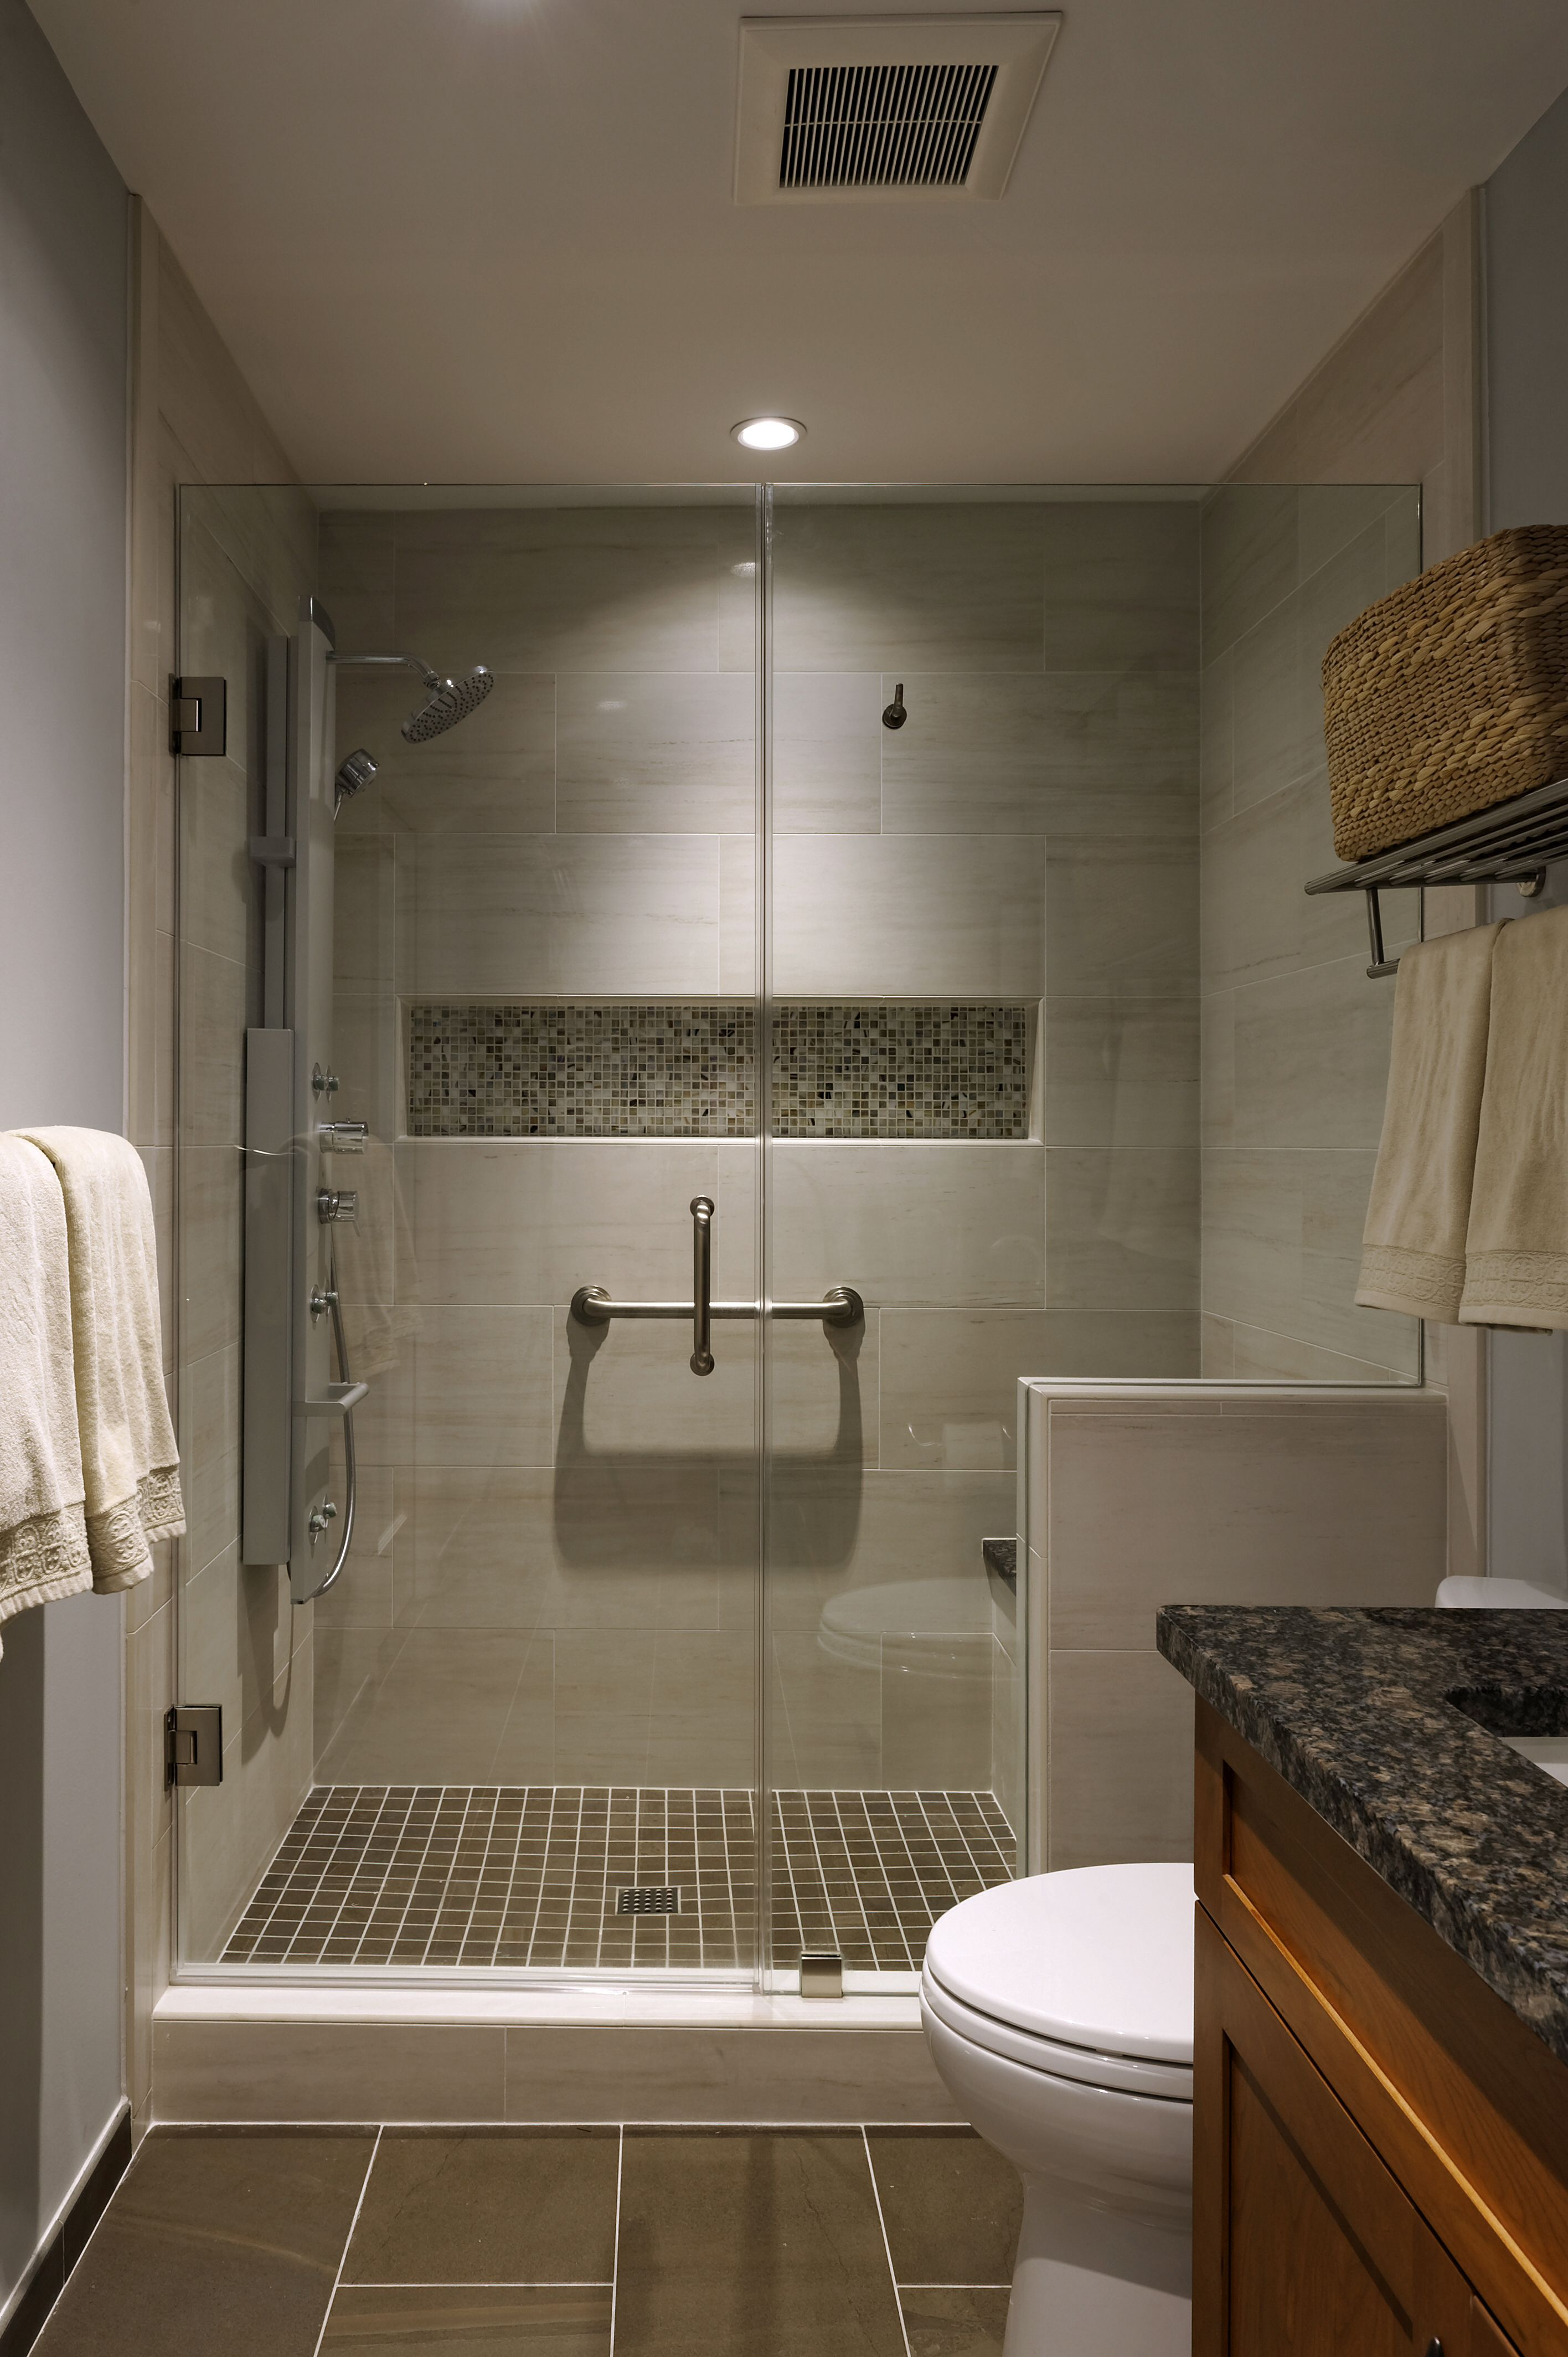 Carrelage Marron Salle De Bain creamy beige with warm brown porcelain and glass shower tile